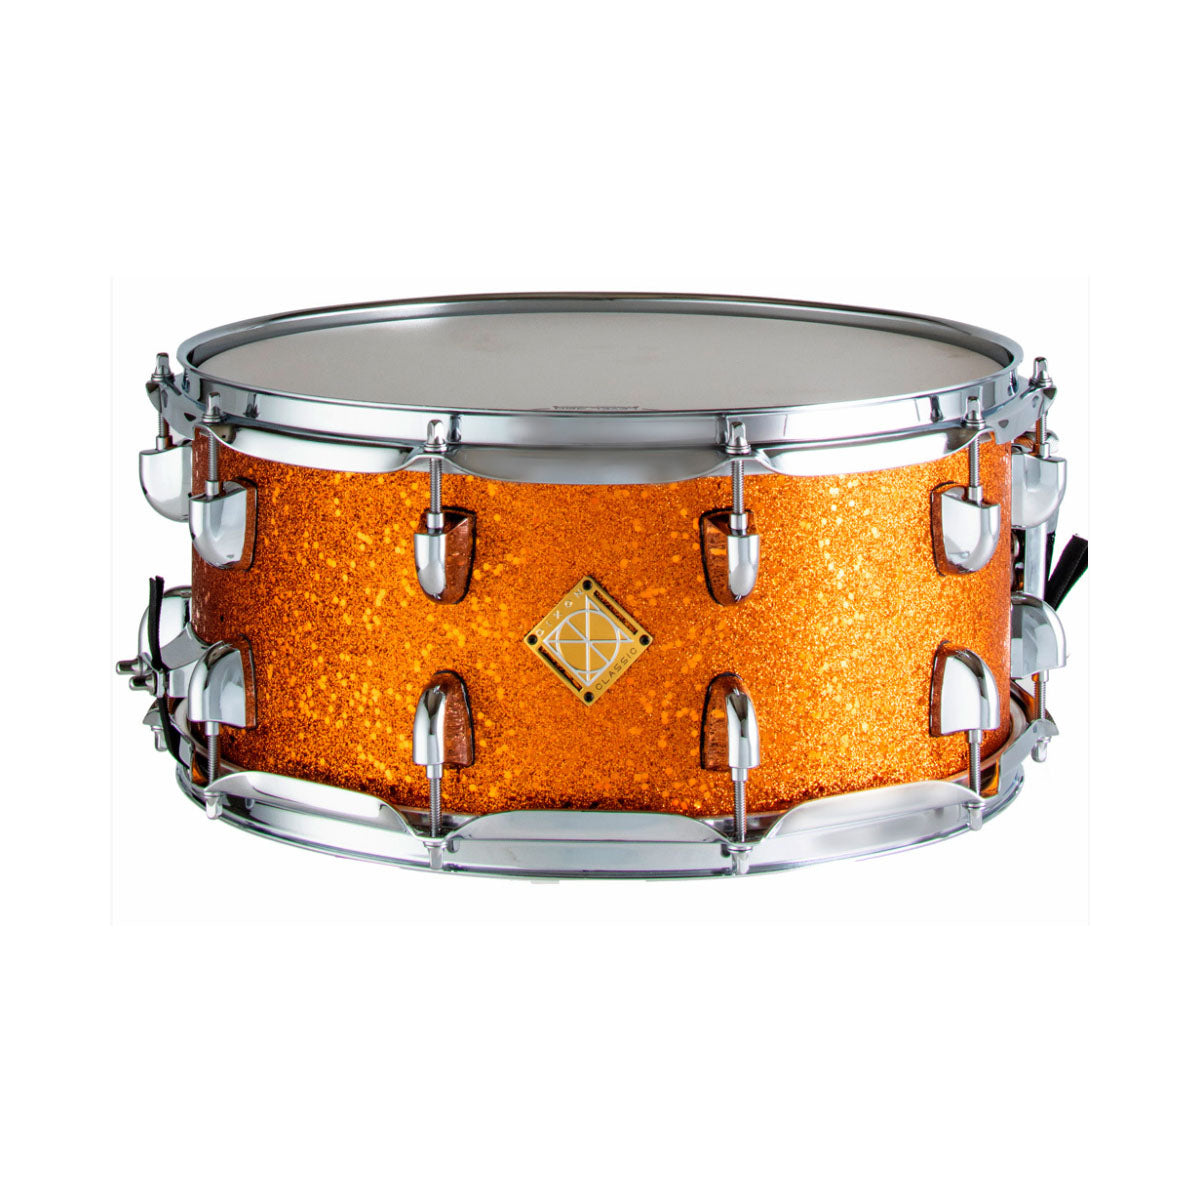 Dixon Classic Series Snare Drum Orange Sparkle - 14x6.5inch - PDSCL654OS